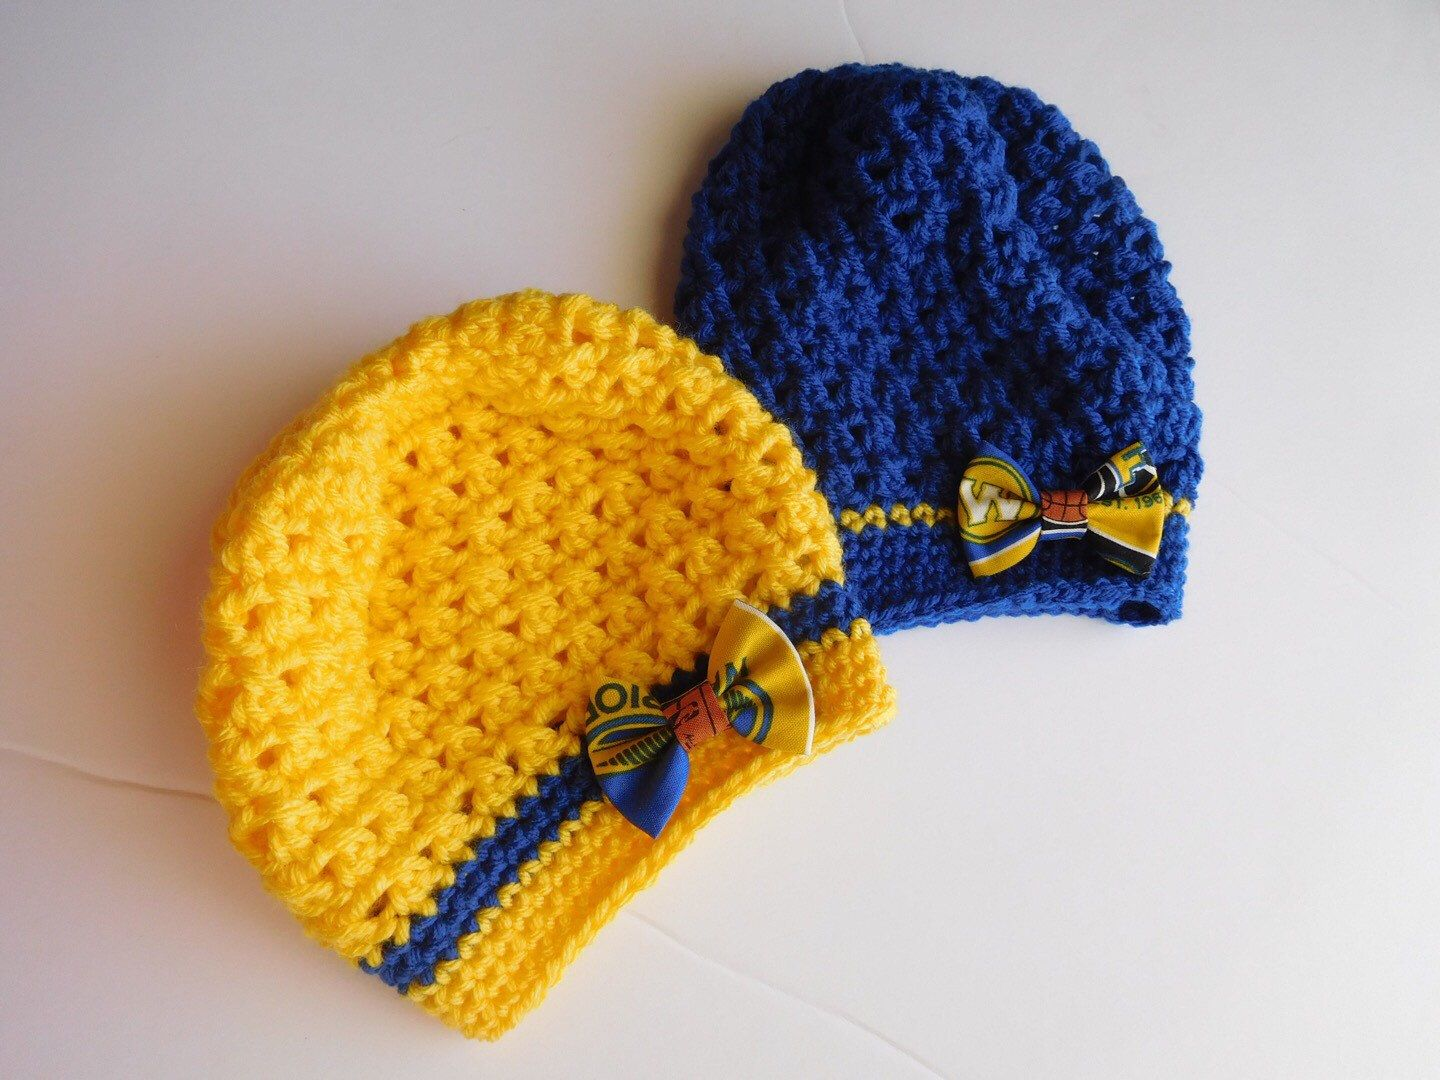 8045b902996a08 ... authentic golden state warriors baby beanies. this is a very special  handmade baby slouchy beanie